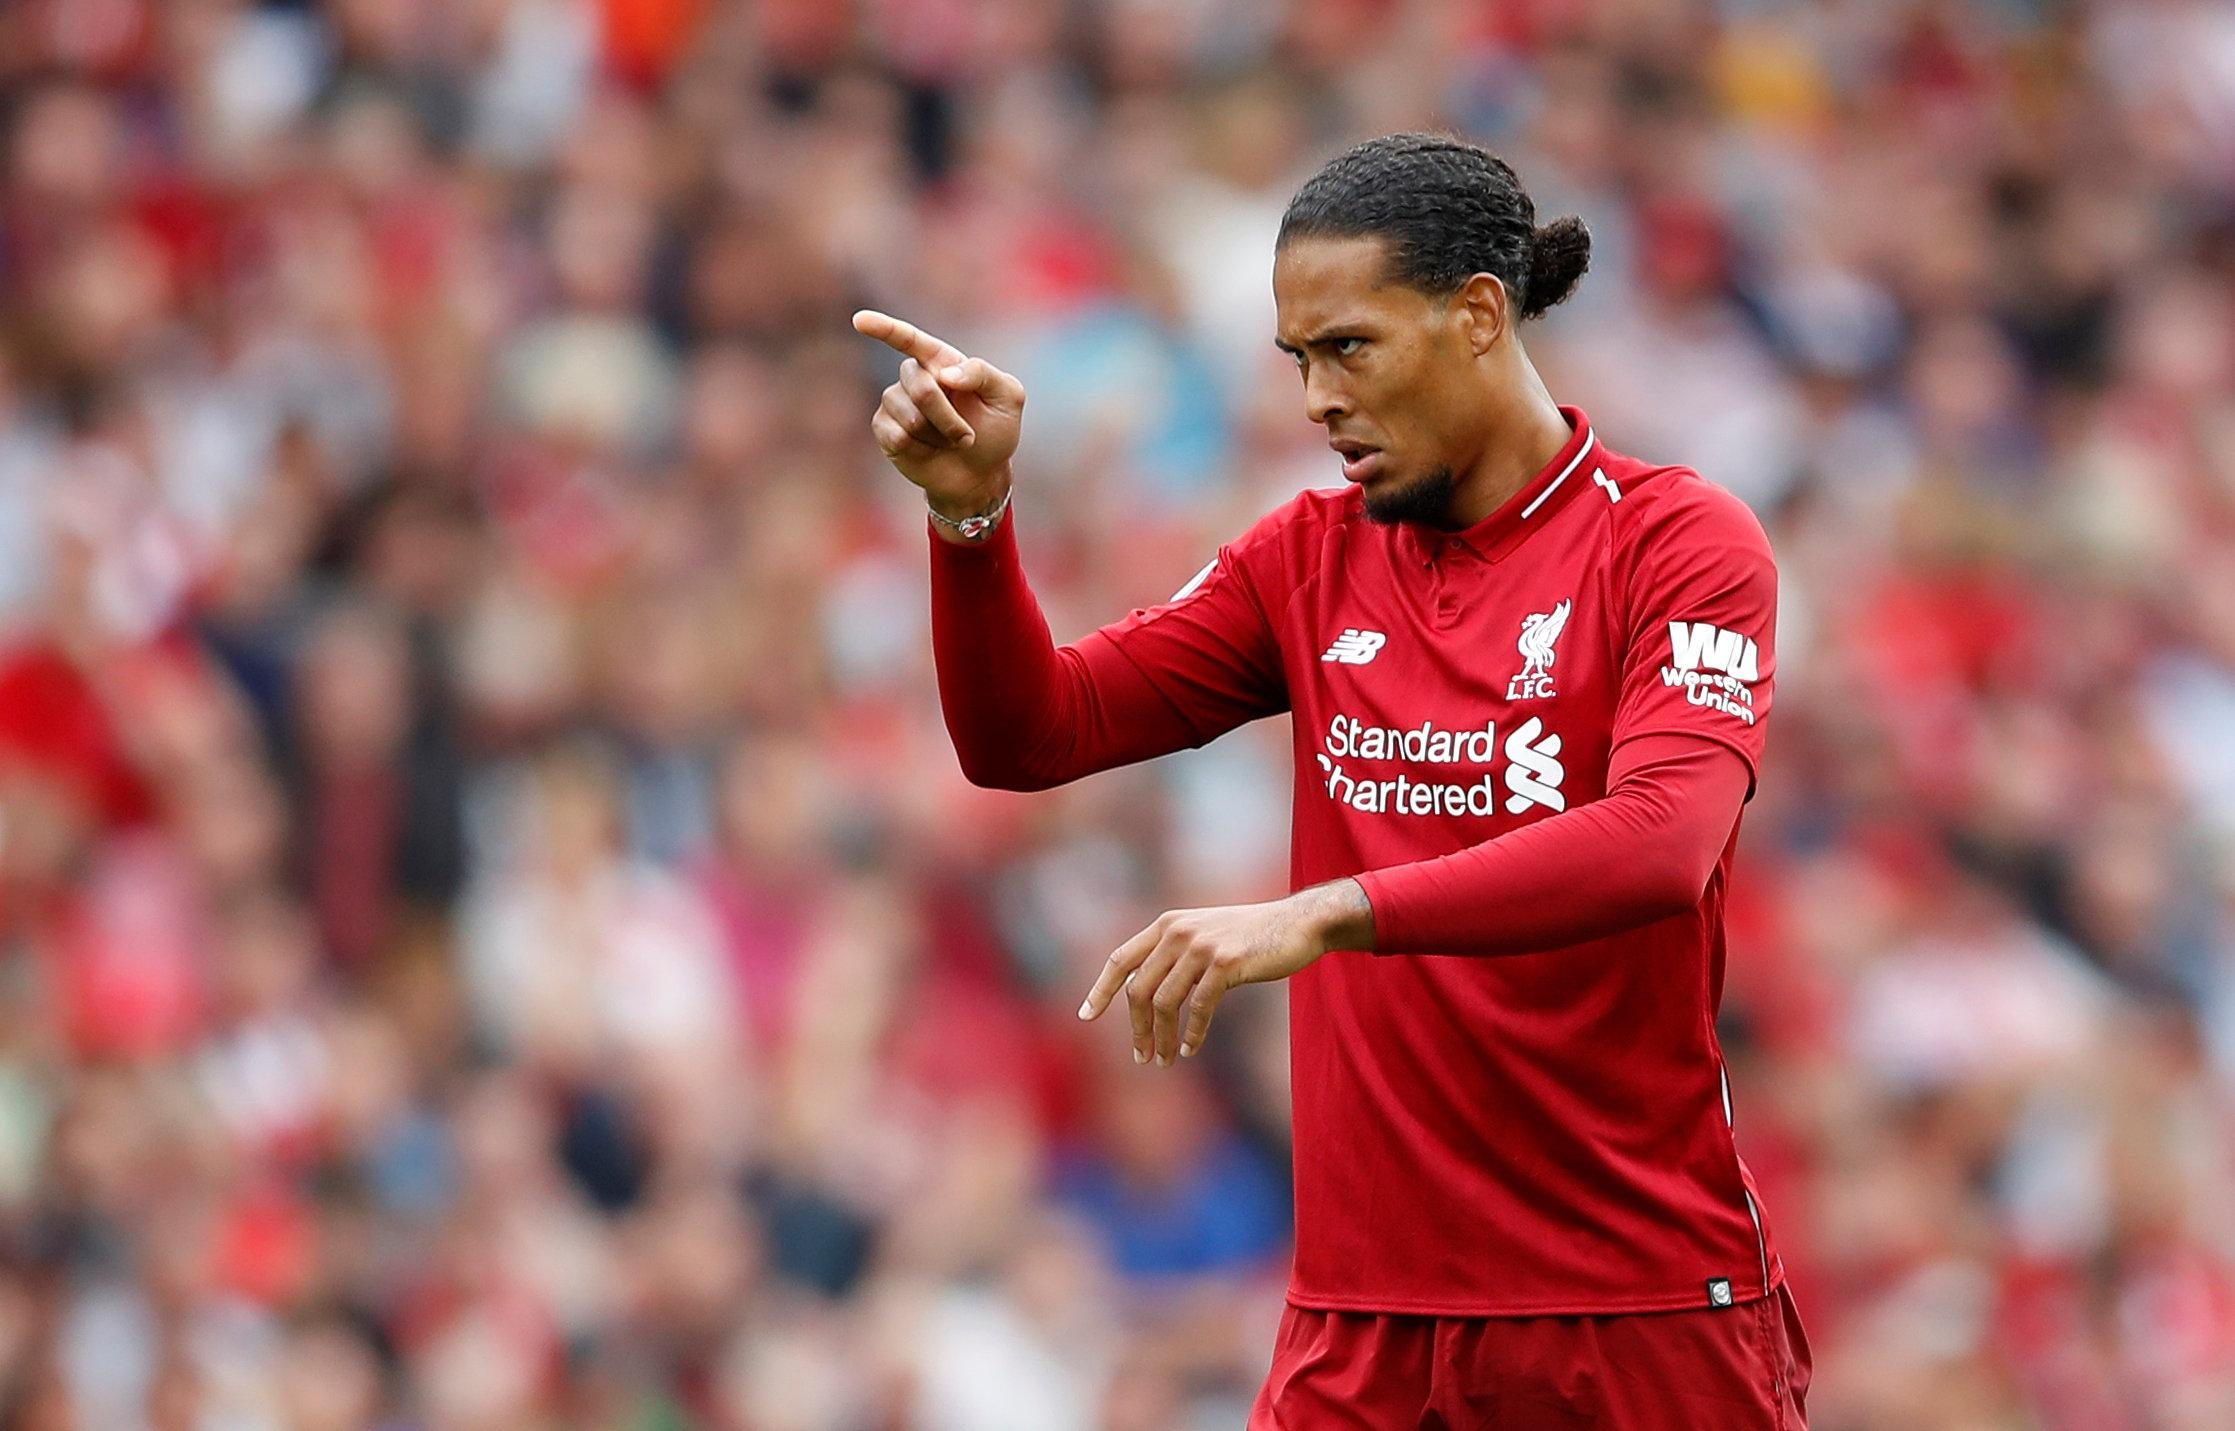 Virgil van Dijk had a comfortable afternoon in his first full season at Liverpool